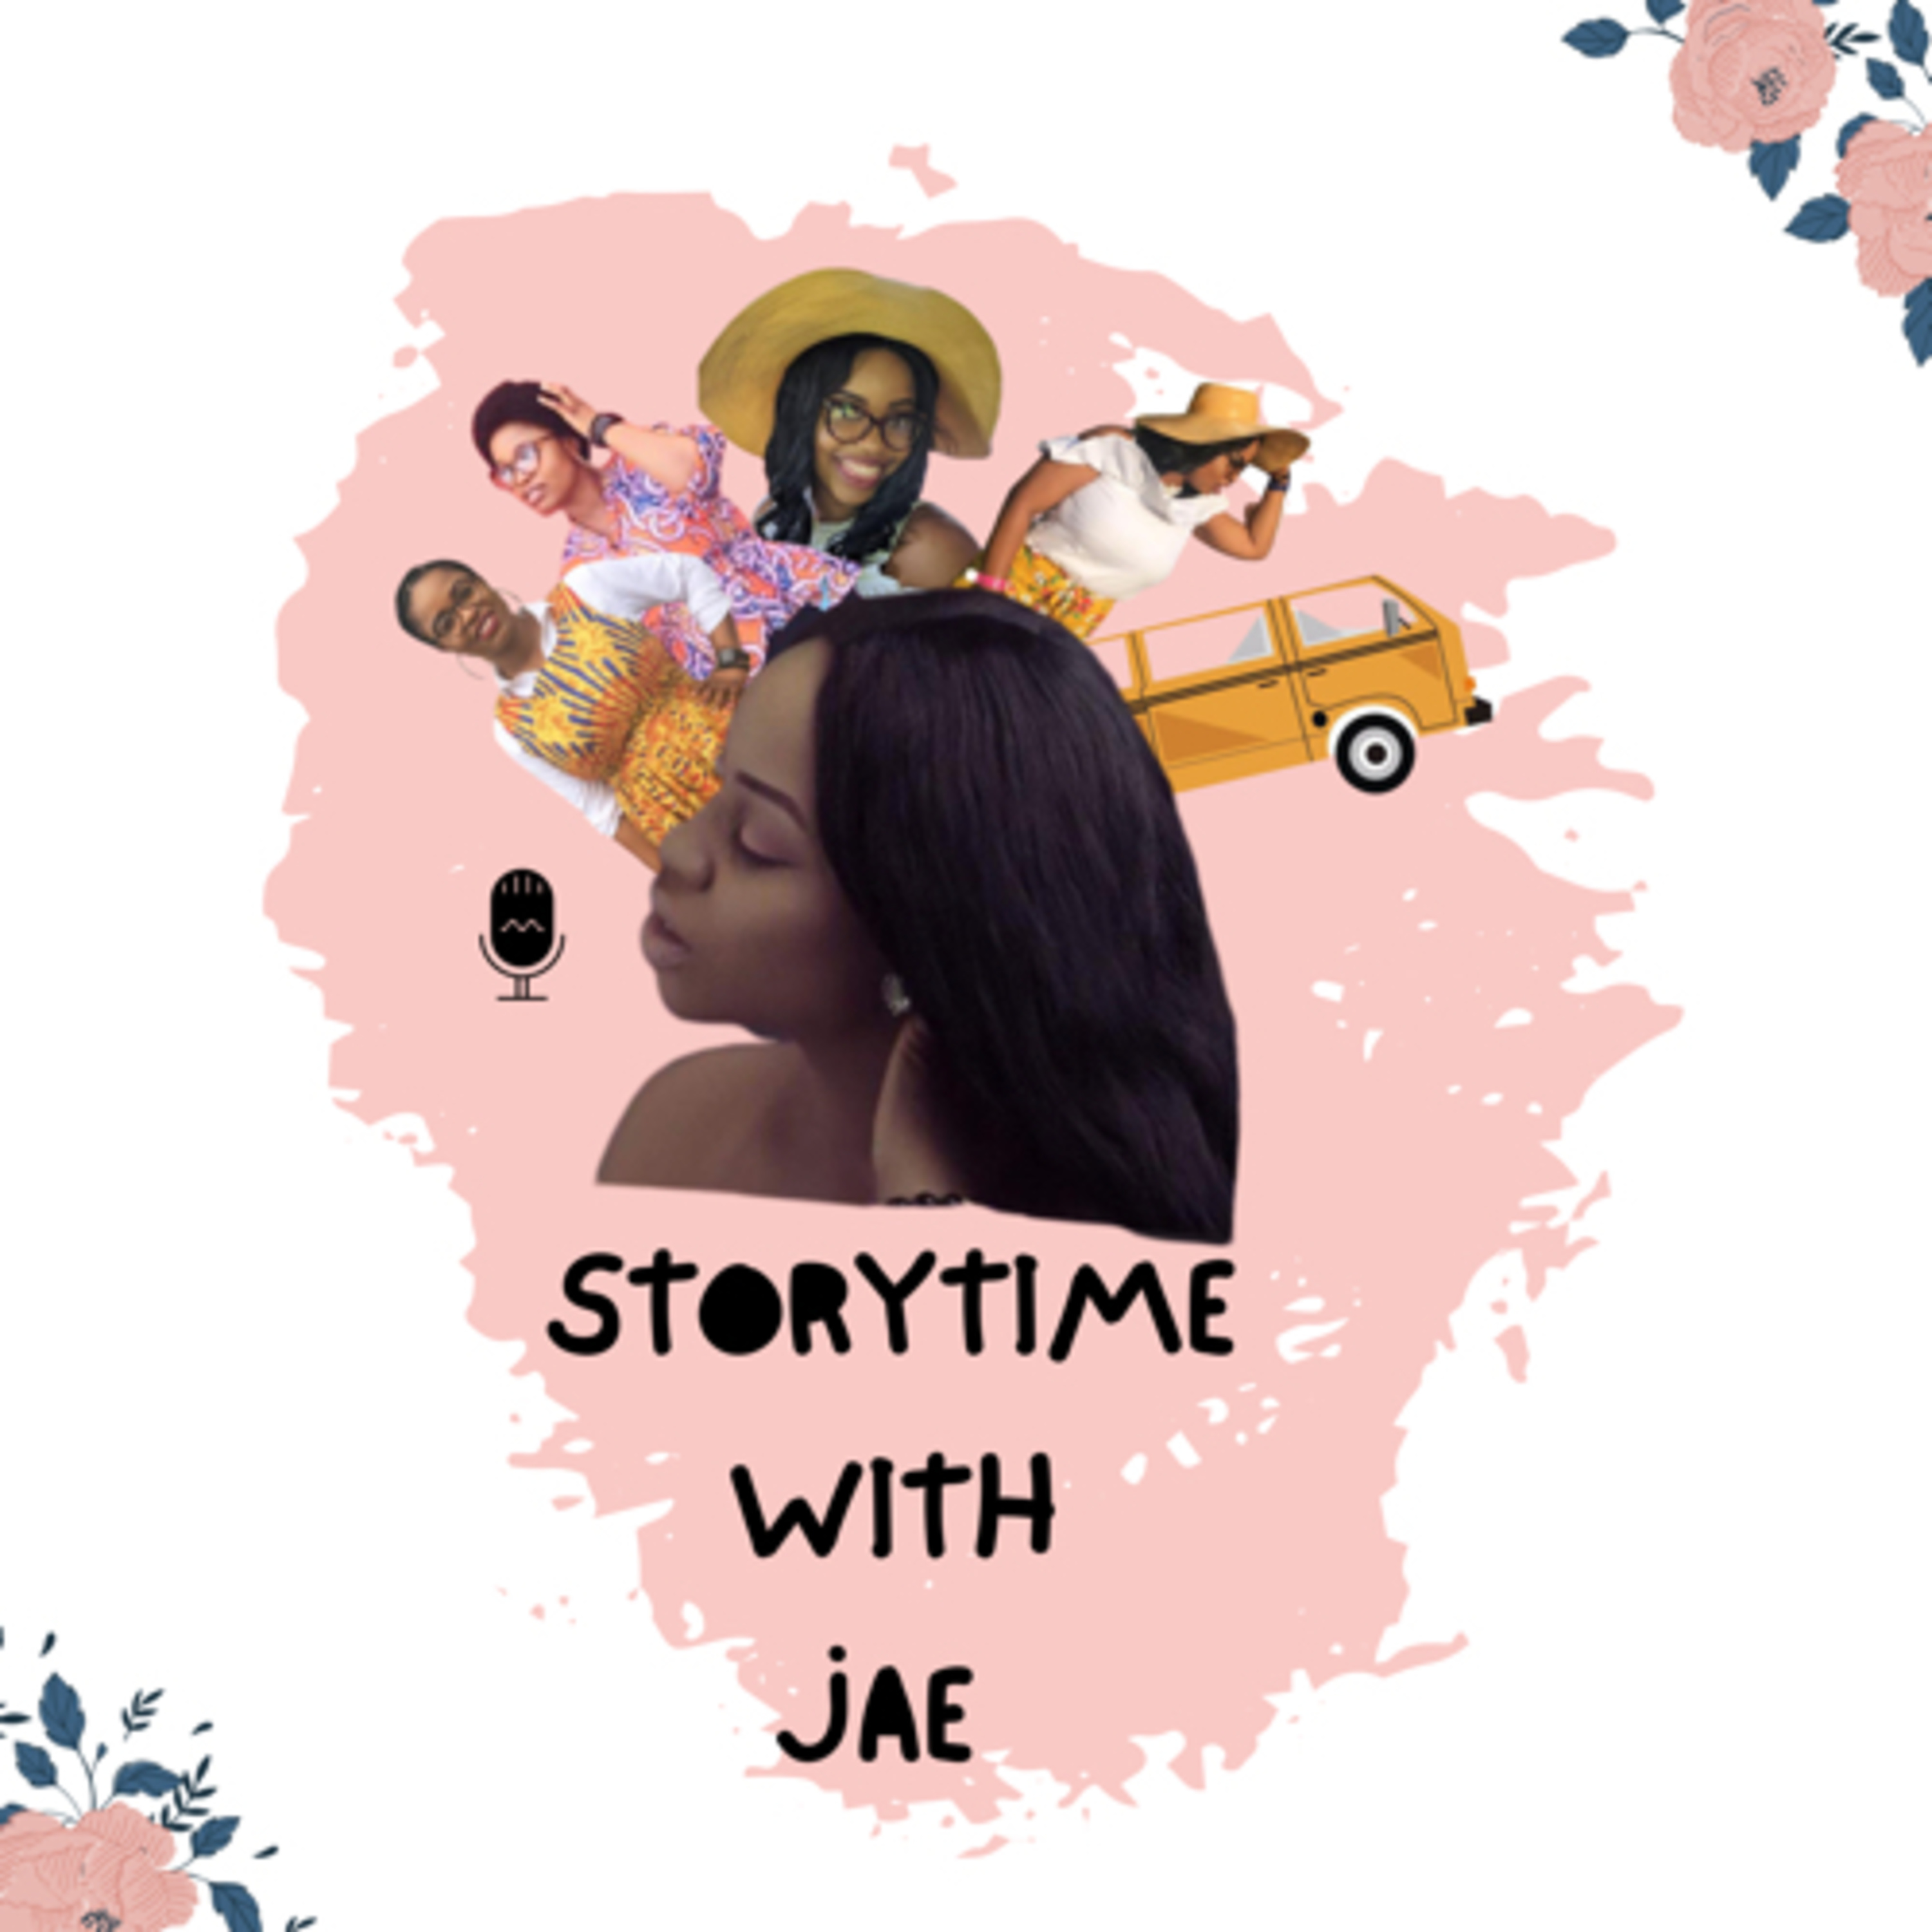 Story time with Jae